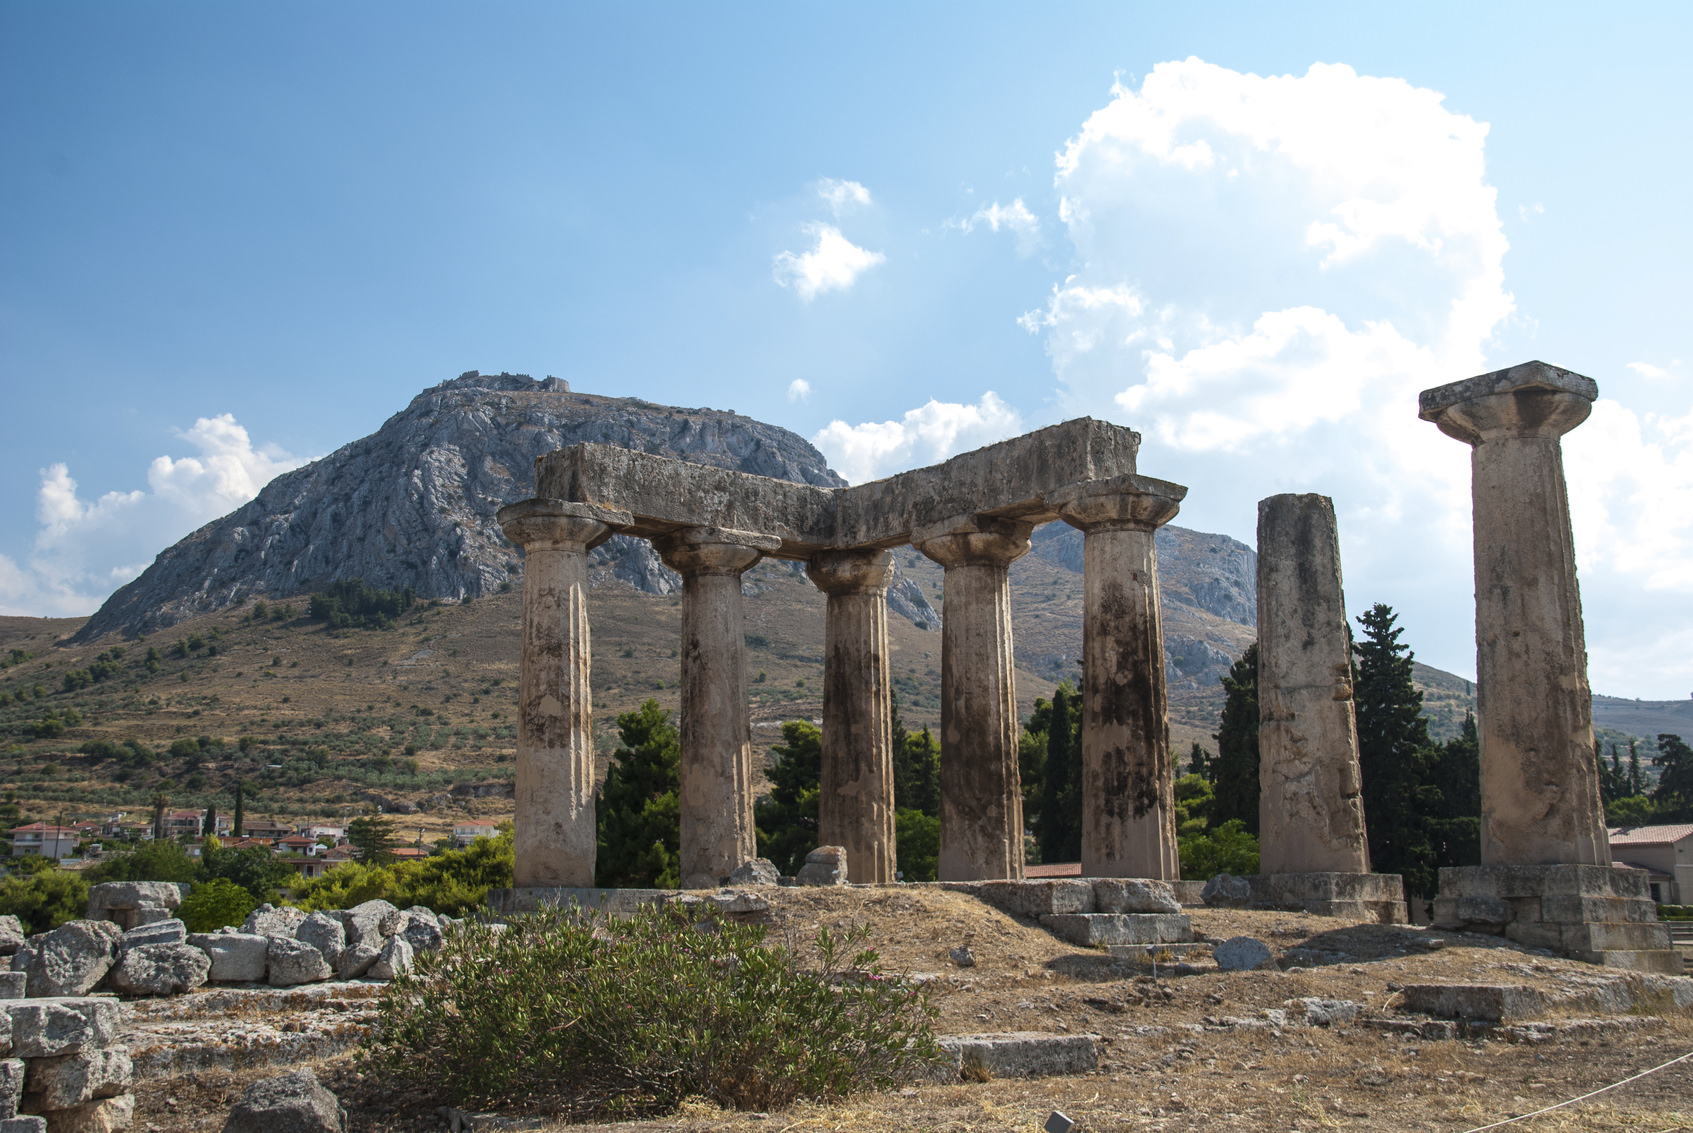 Ruins of Ancient Corinth, Greece with the Acrocorinth in the background